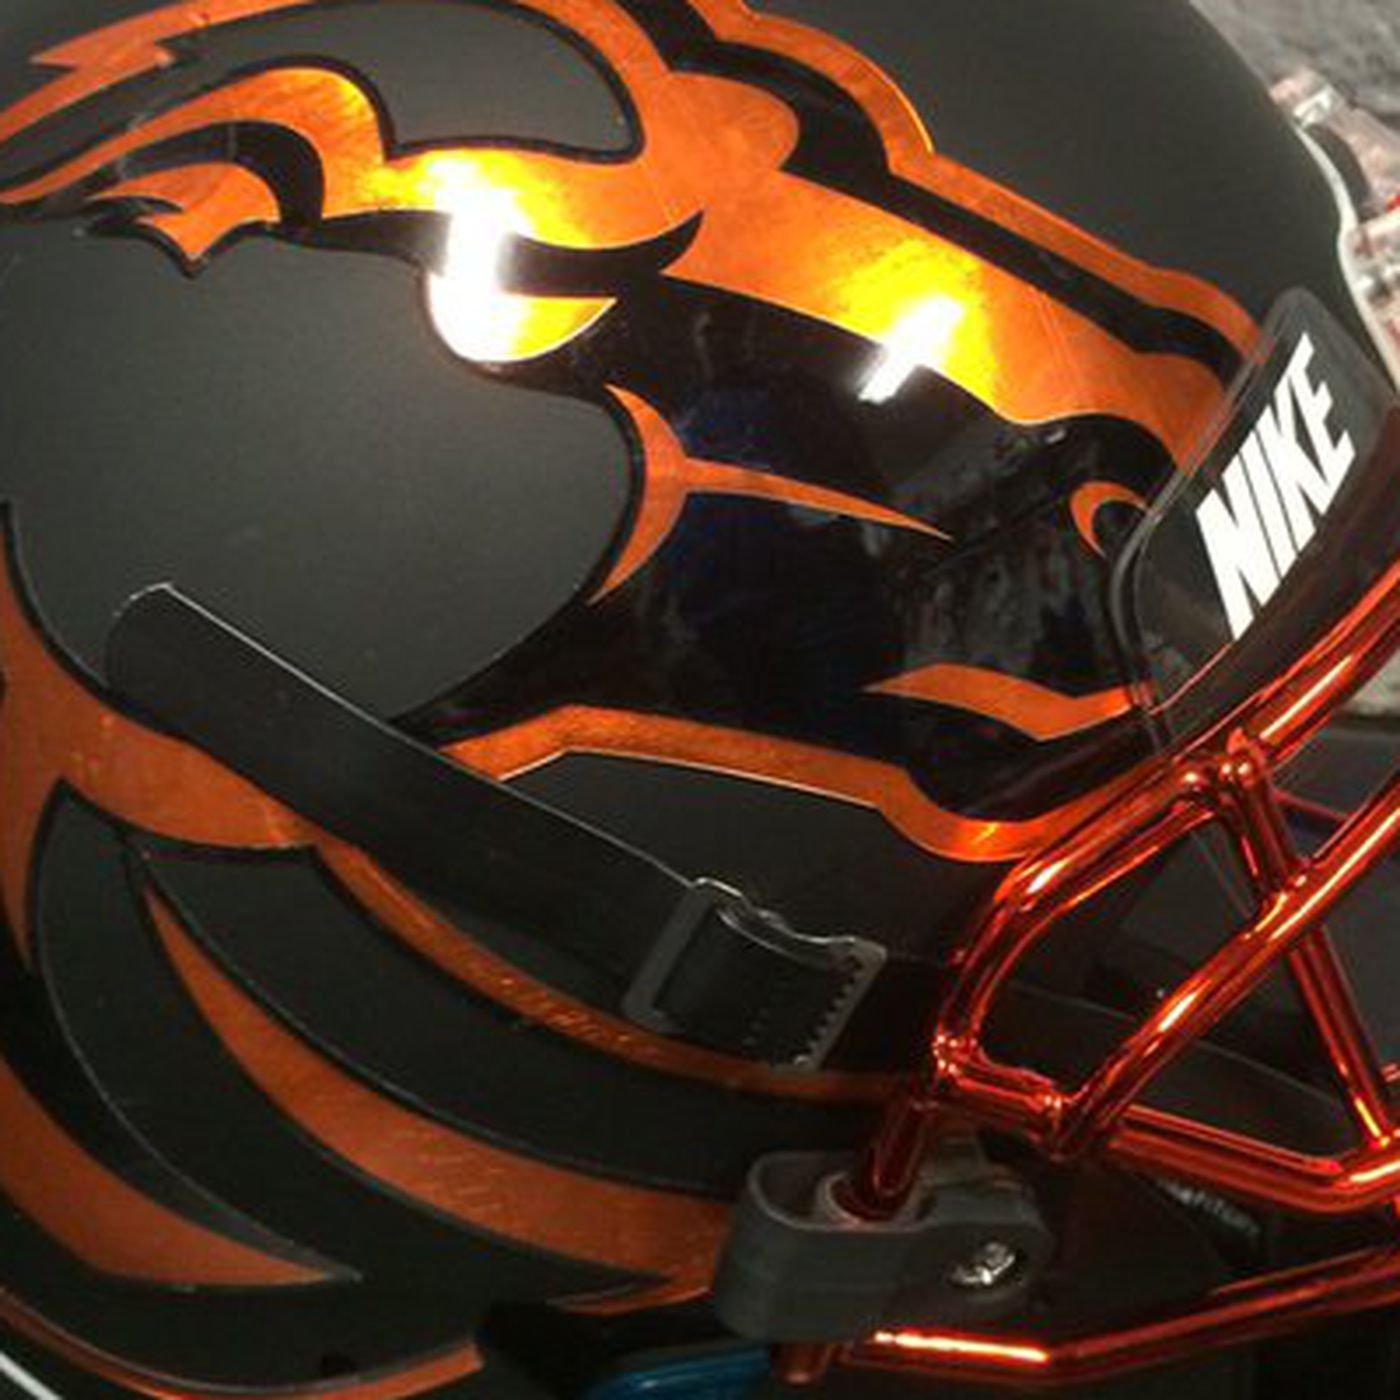 Boise State s Halloween helmets are festive and awesome SBNation